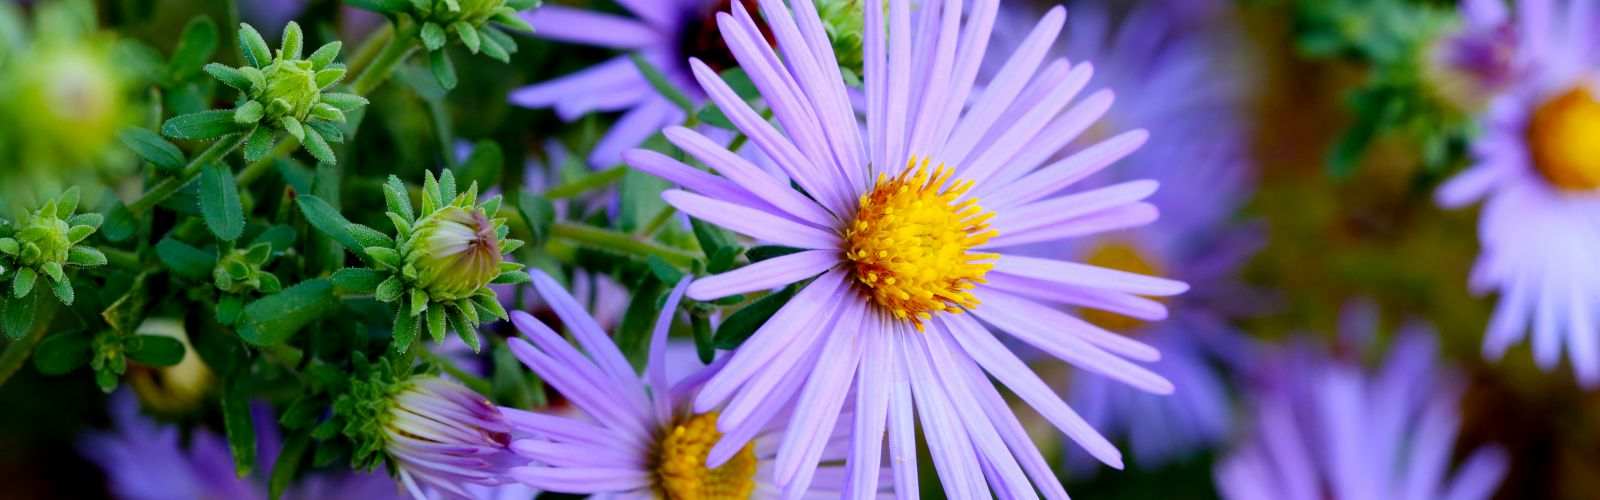 a close up of asters